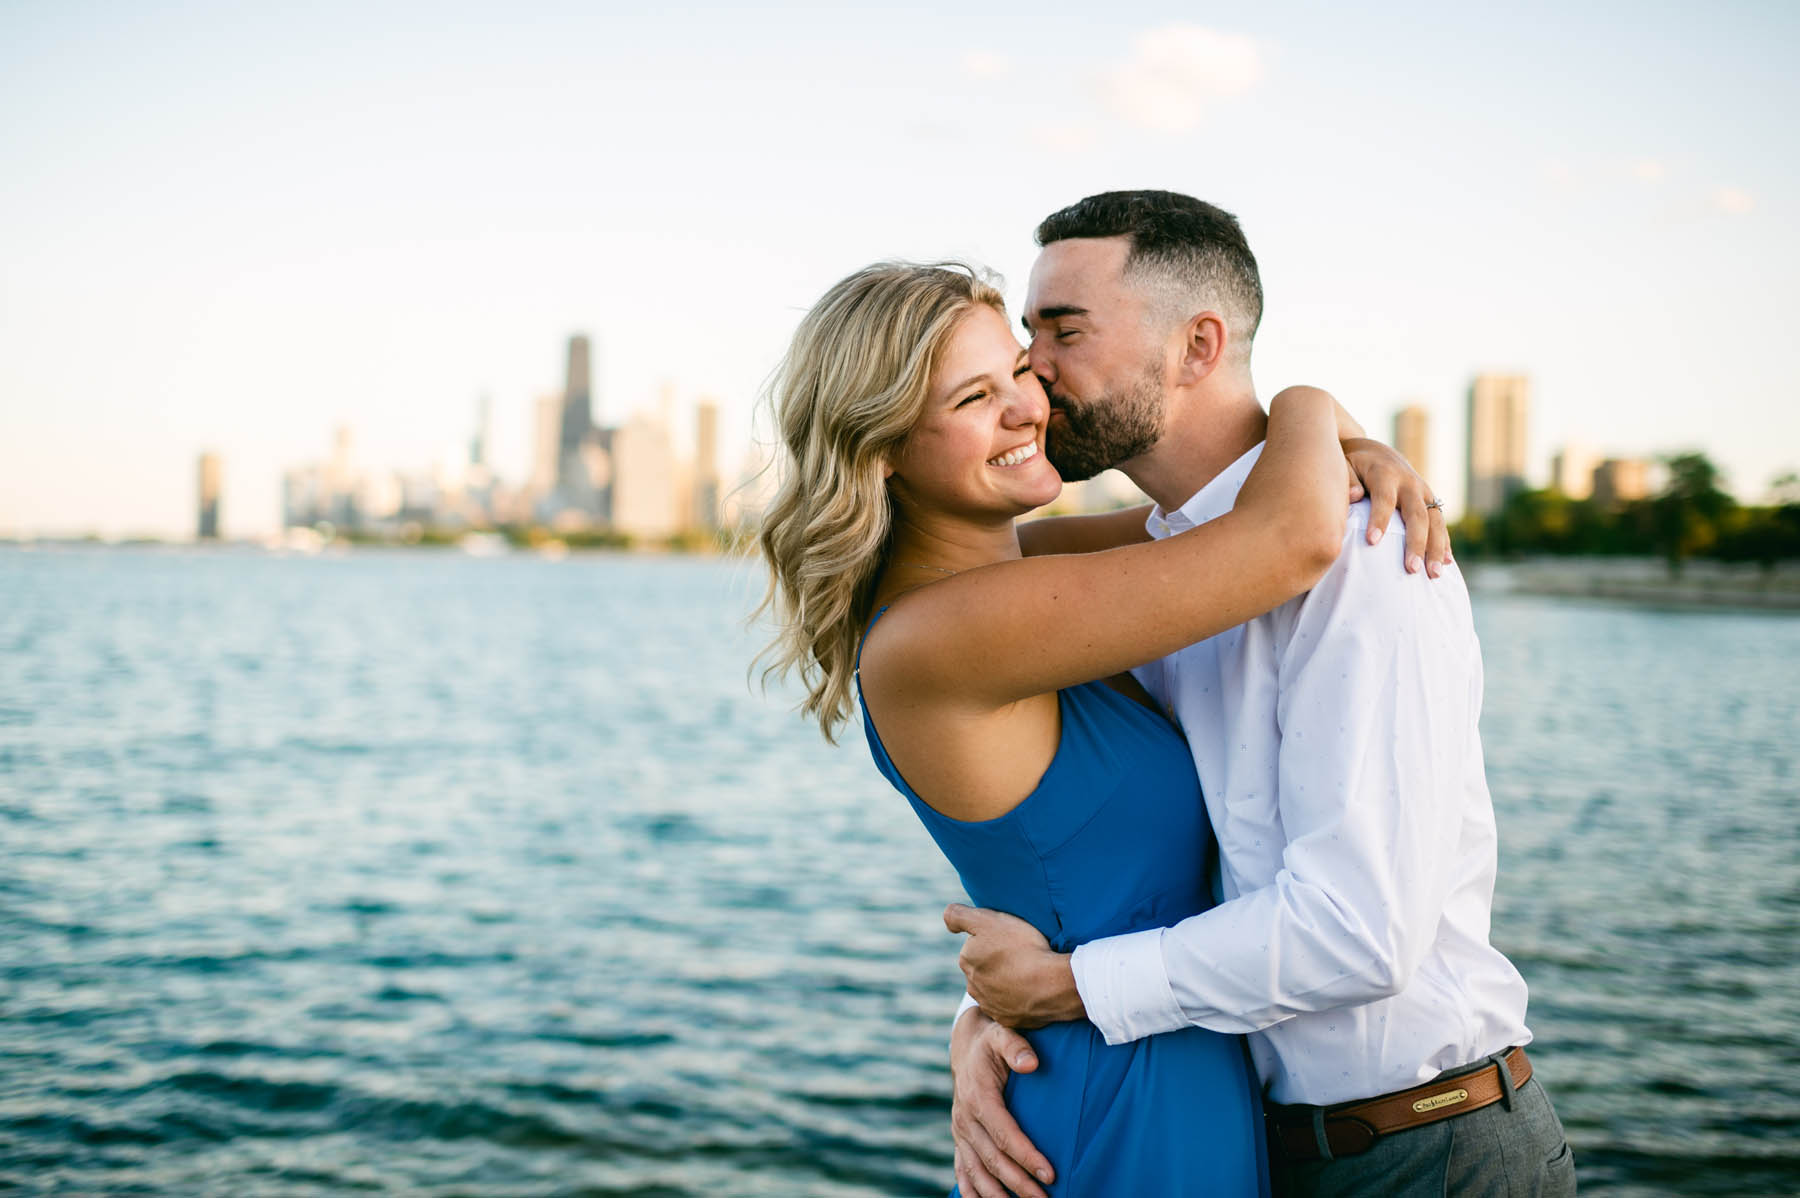 Fullerton Beach Engagement Photos